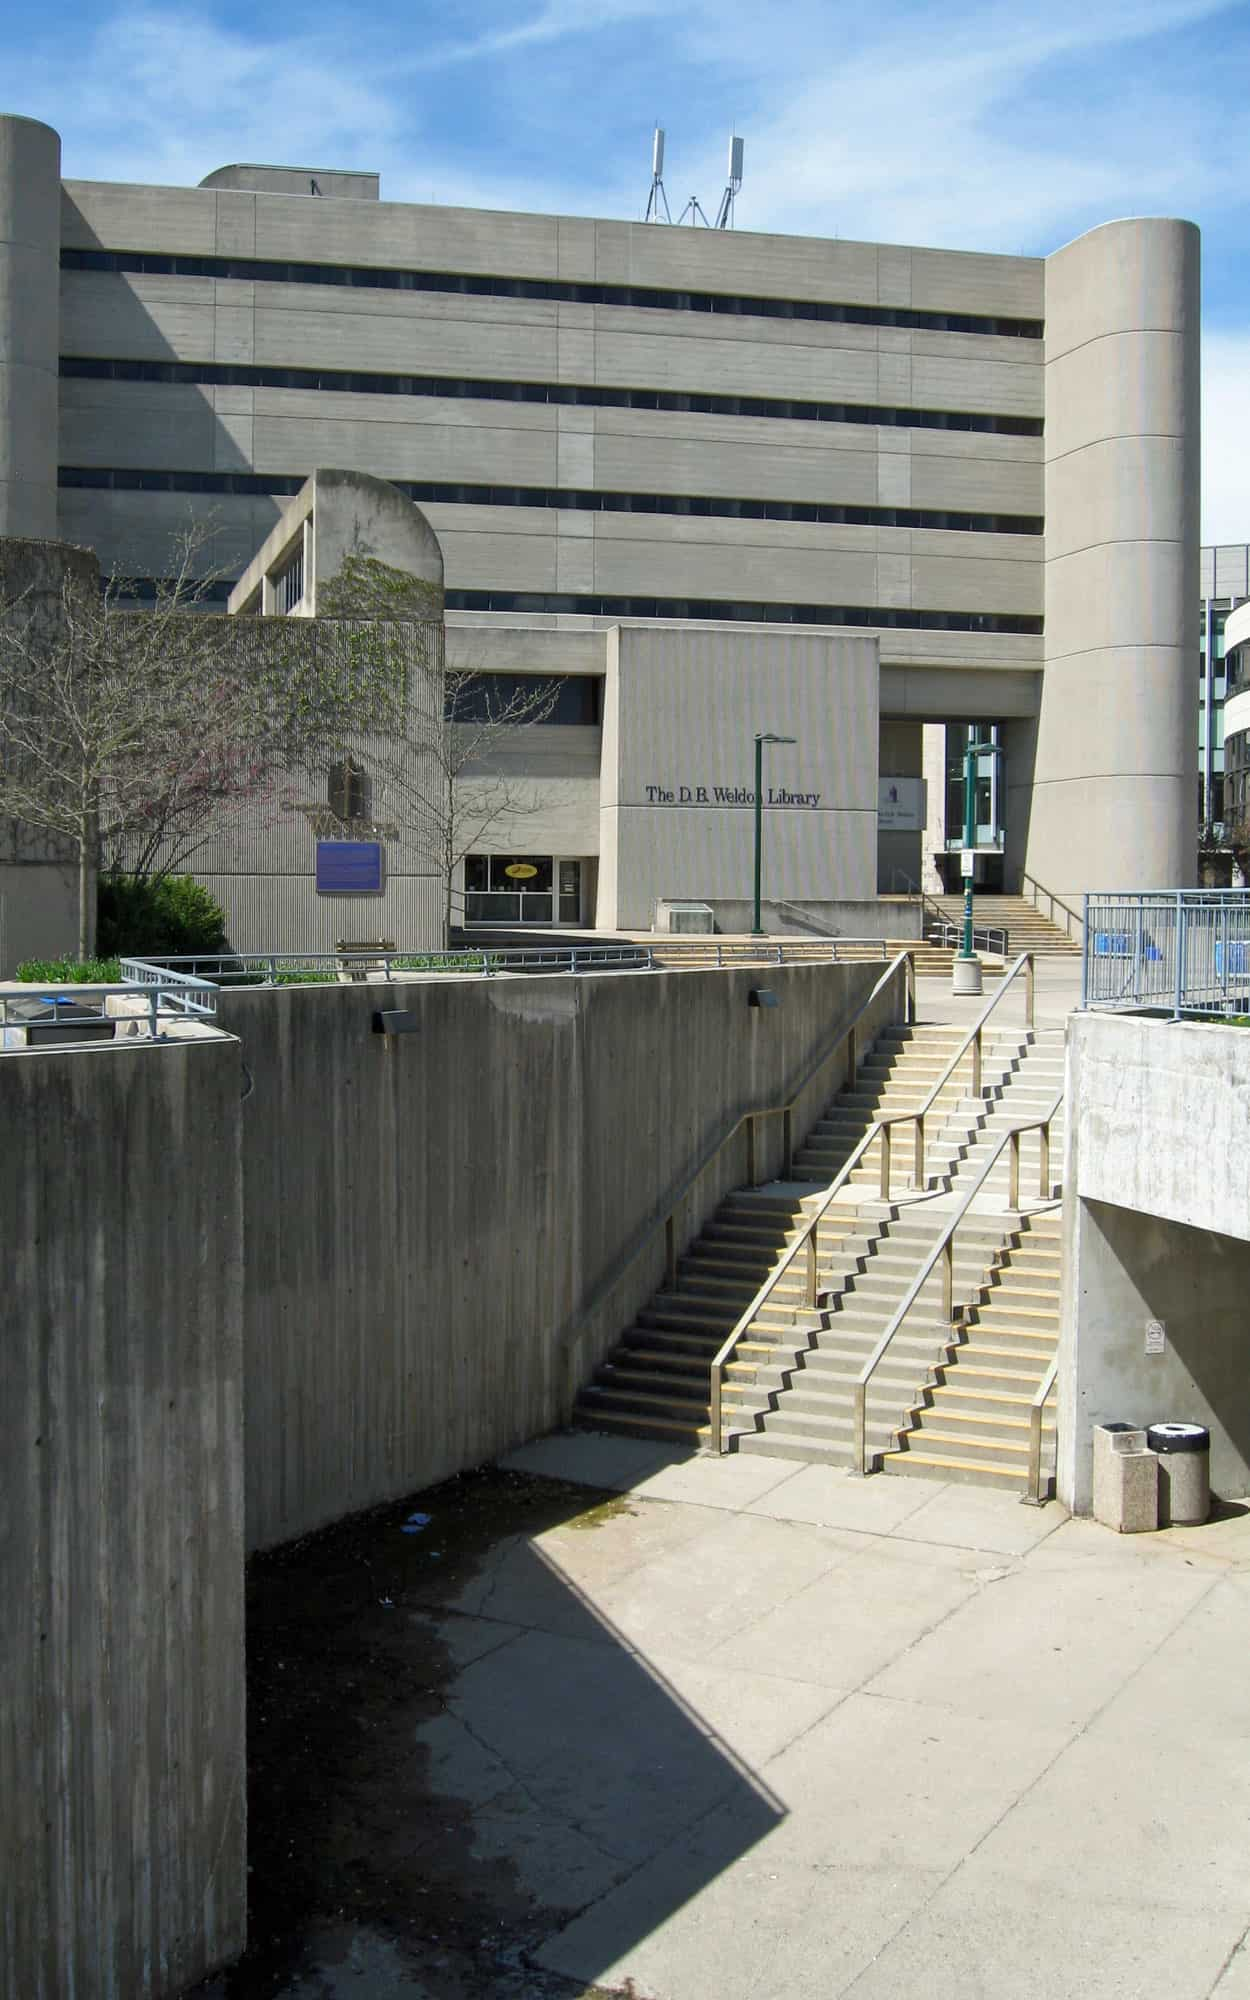 Approaching the building from the east